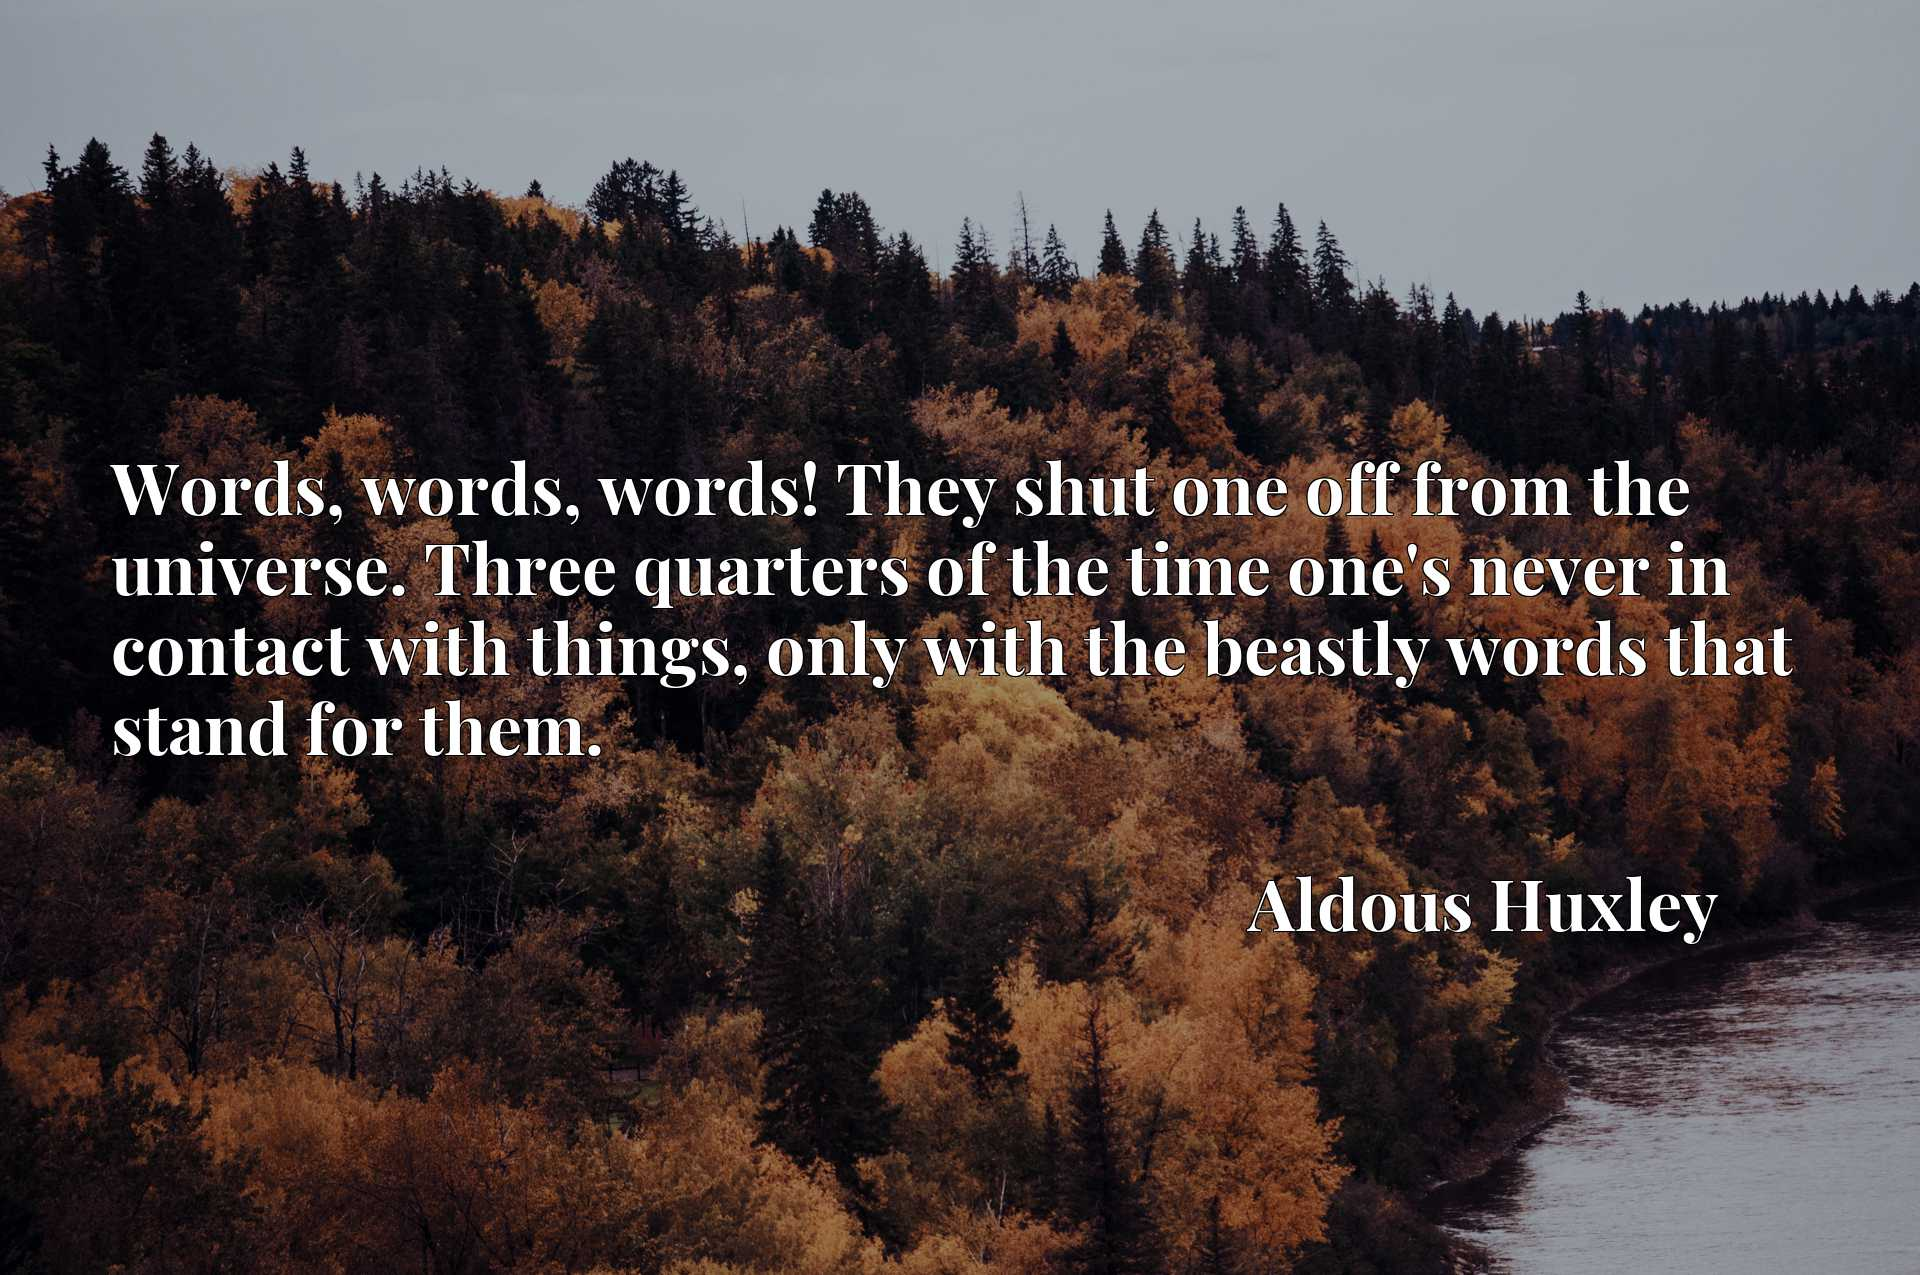 Words, words, words! They shut one off from the universe. Three quarters of the time one's never in contact with things, only with the beastly words that stand for them.